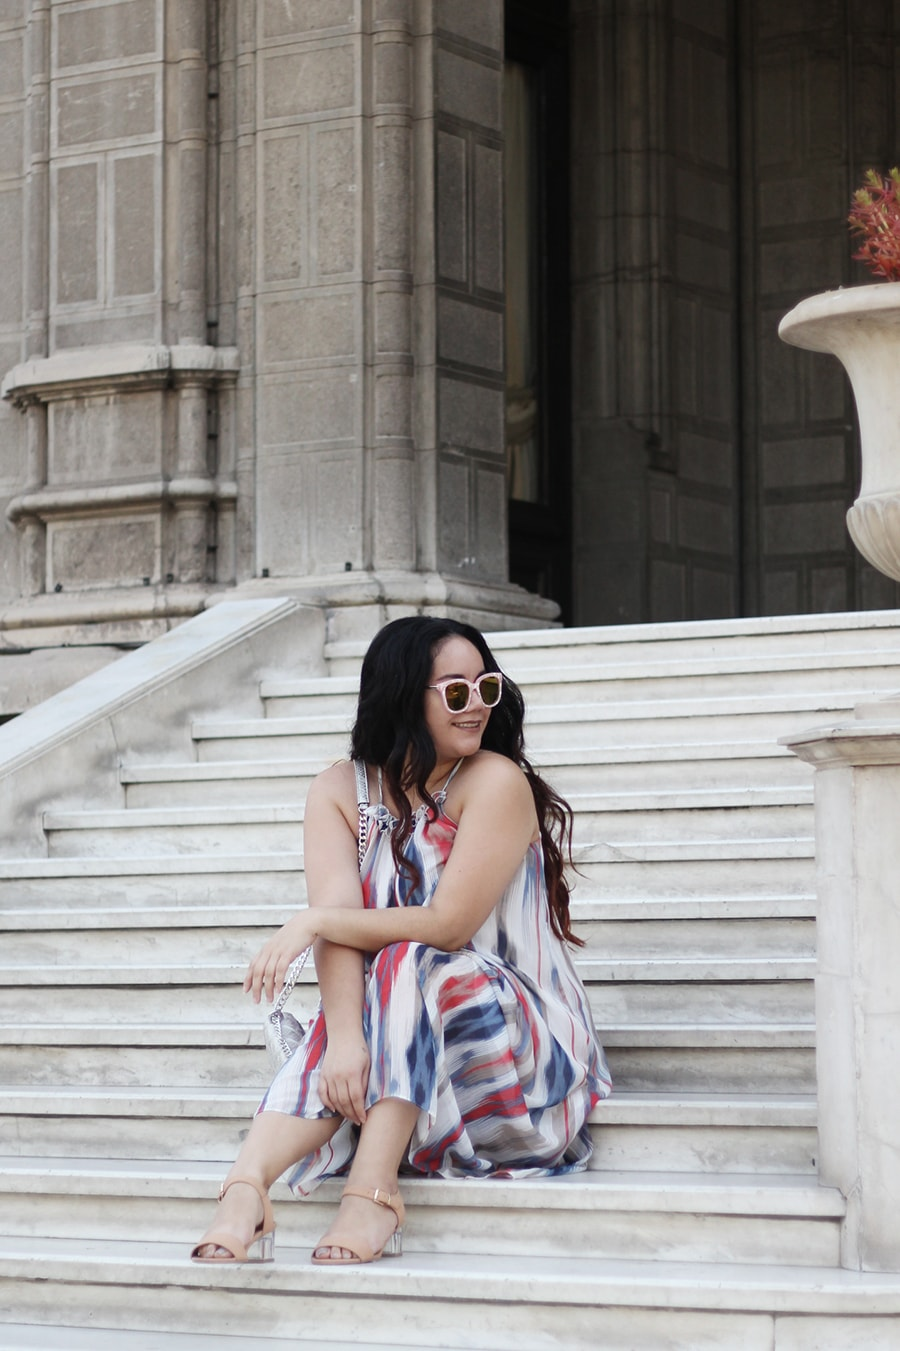 Maxi Dress - Maxidress summer outfit inspiration plus size mexican blogger | Golden Strokes